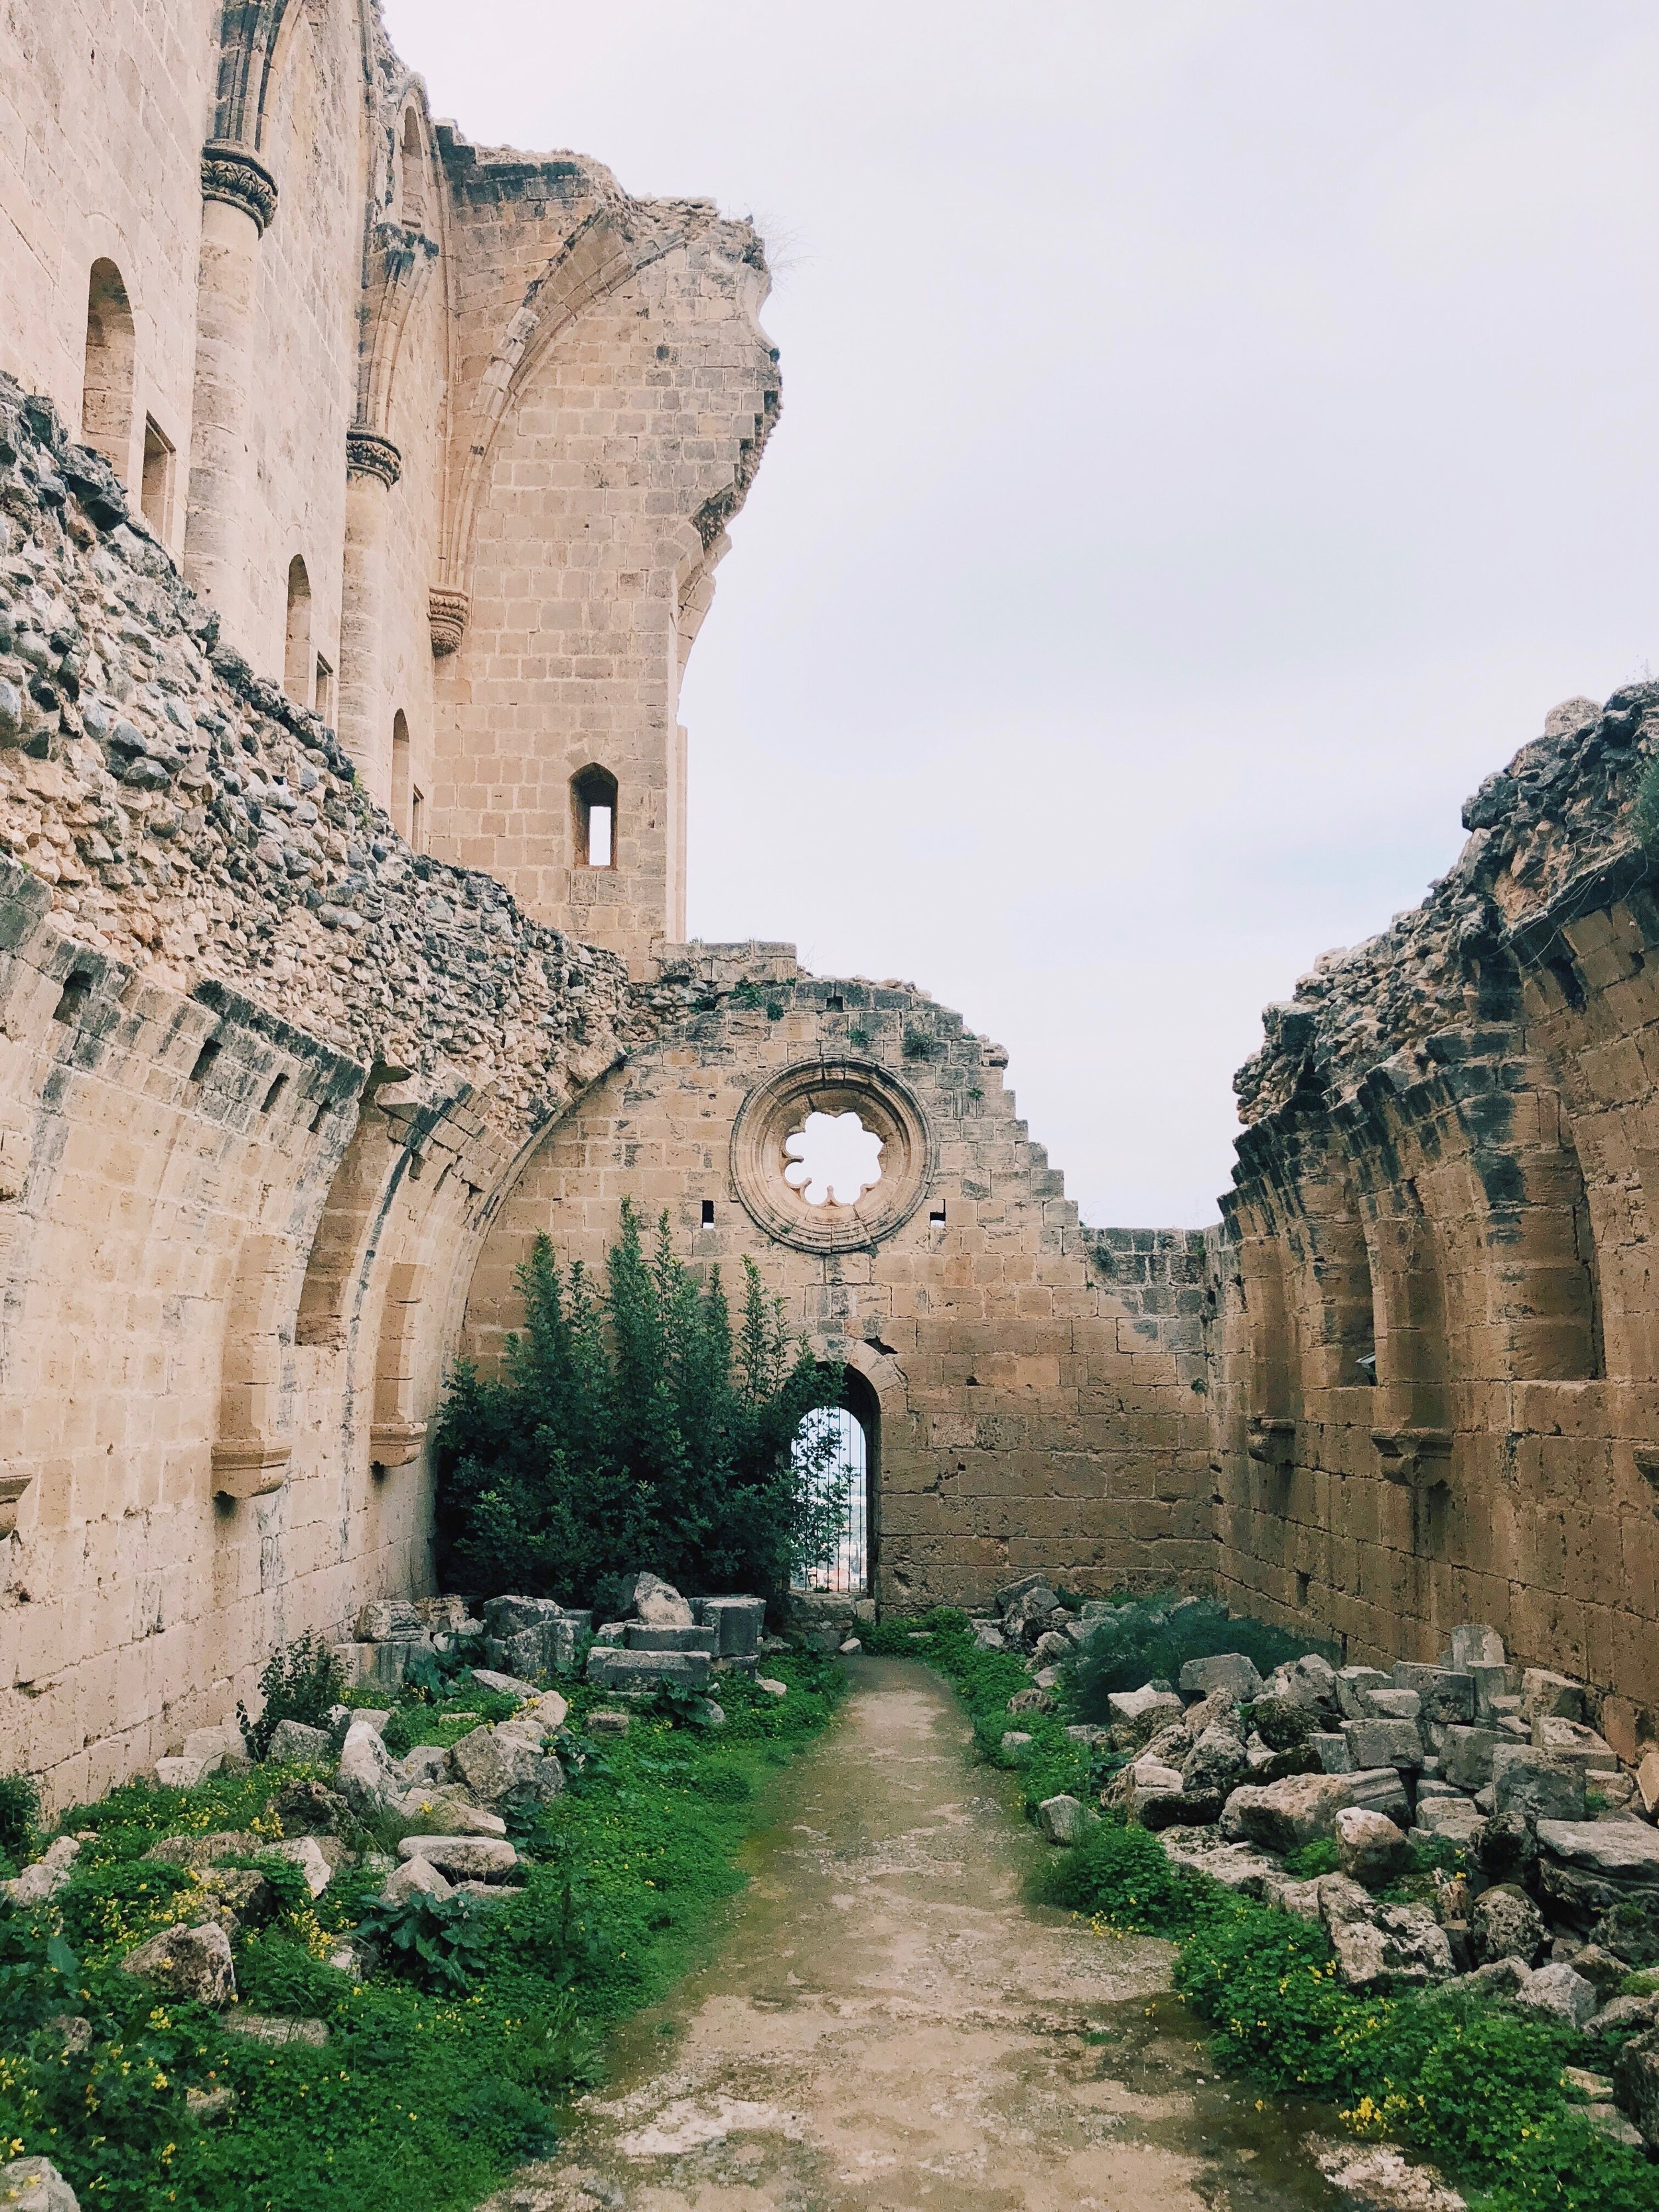 The beautiful ruins of the abbey of Bellapais.